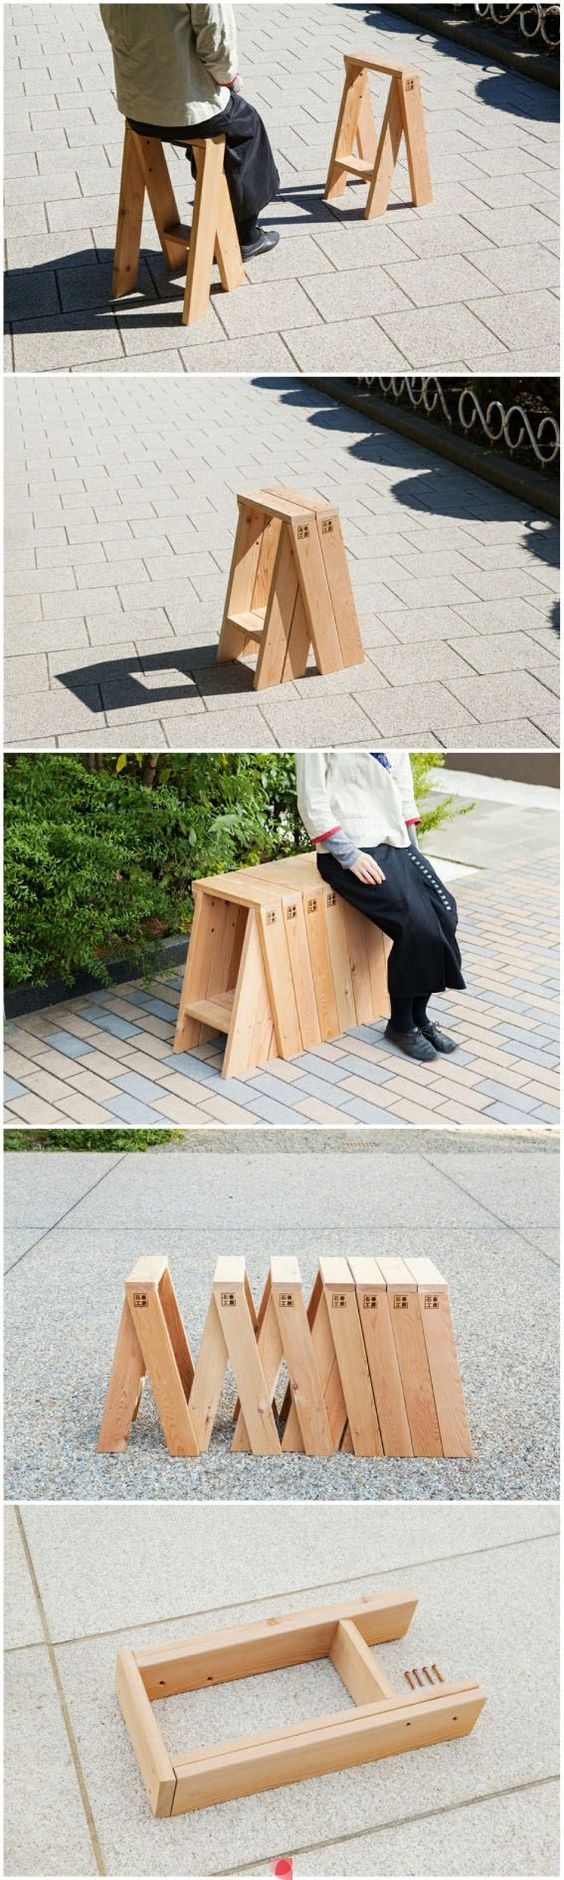 Could be good for a small art class in a multi-use space!: